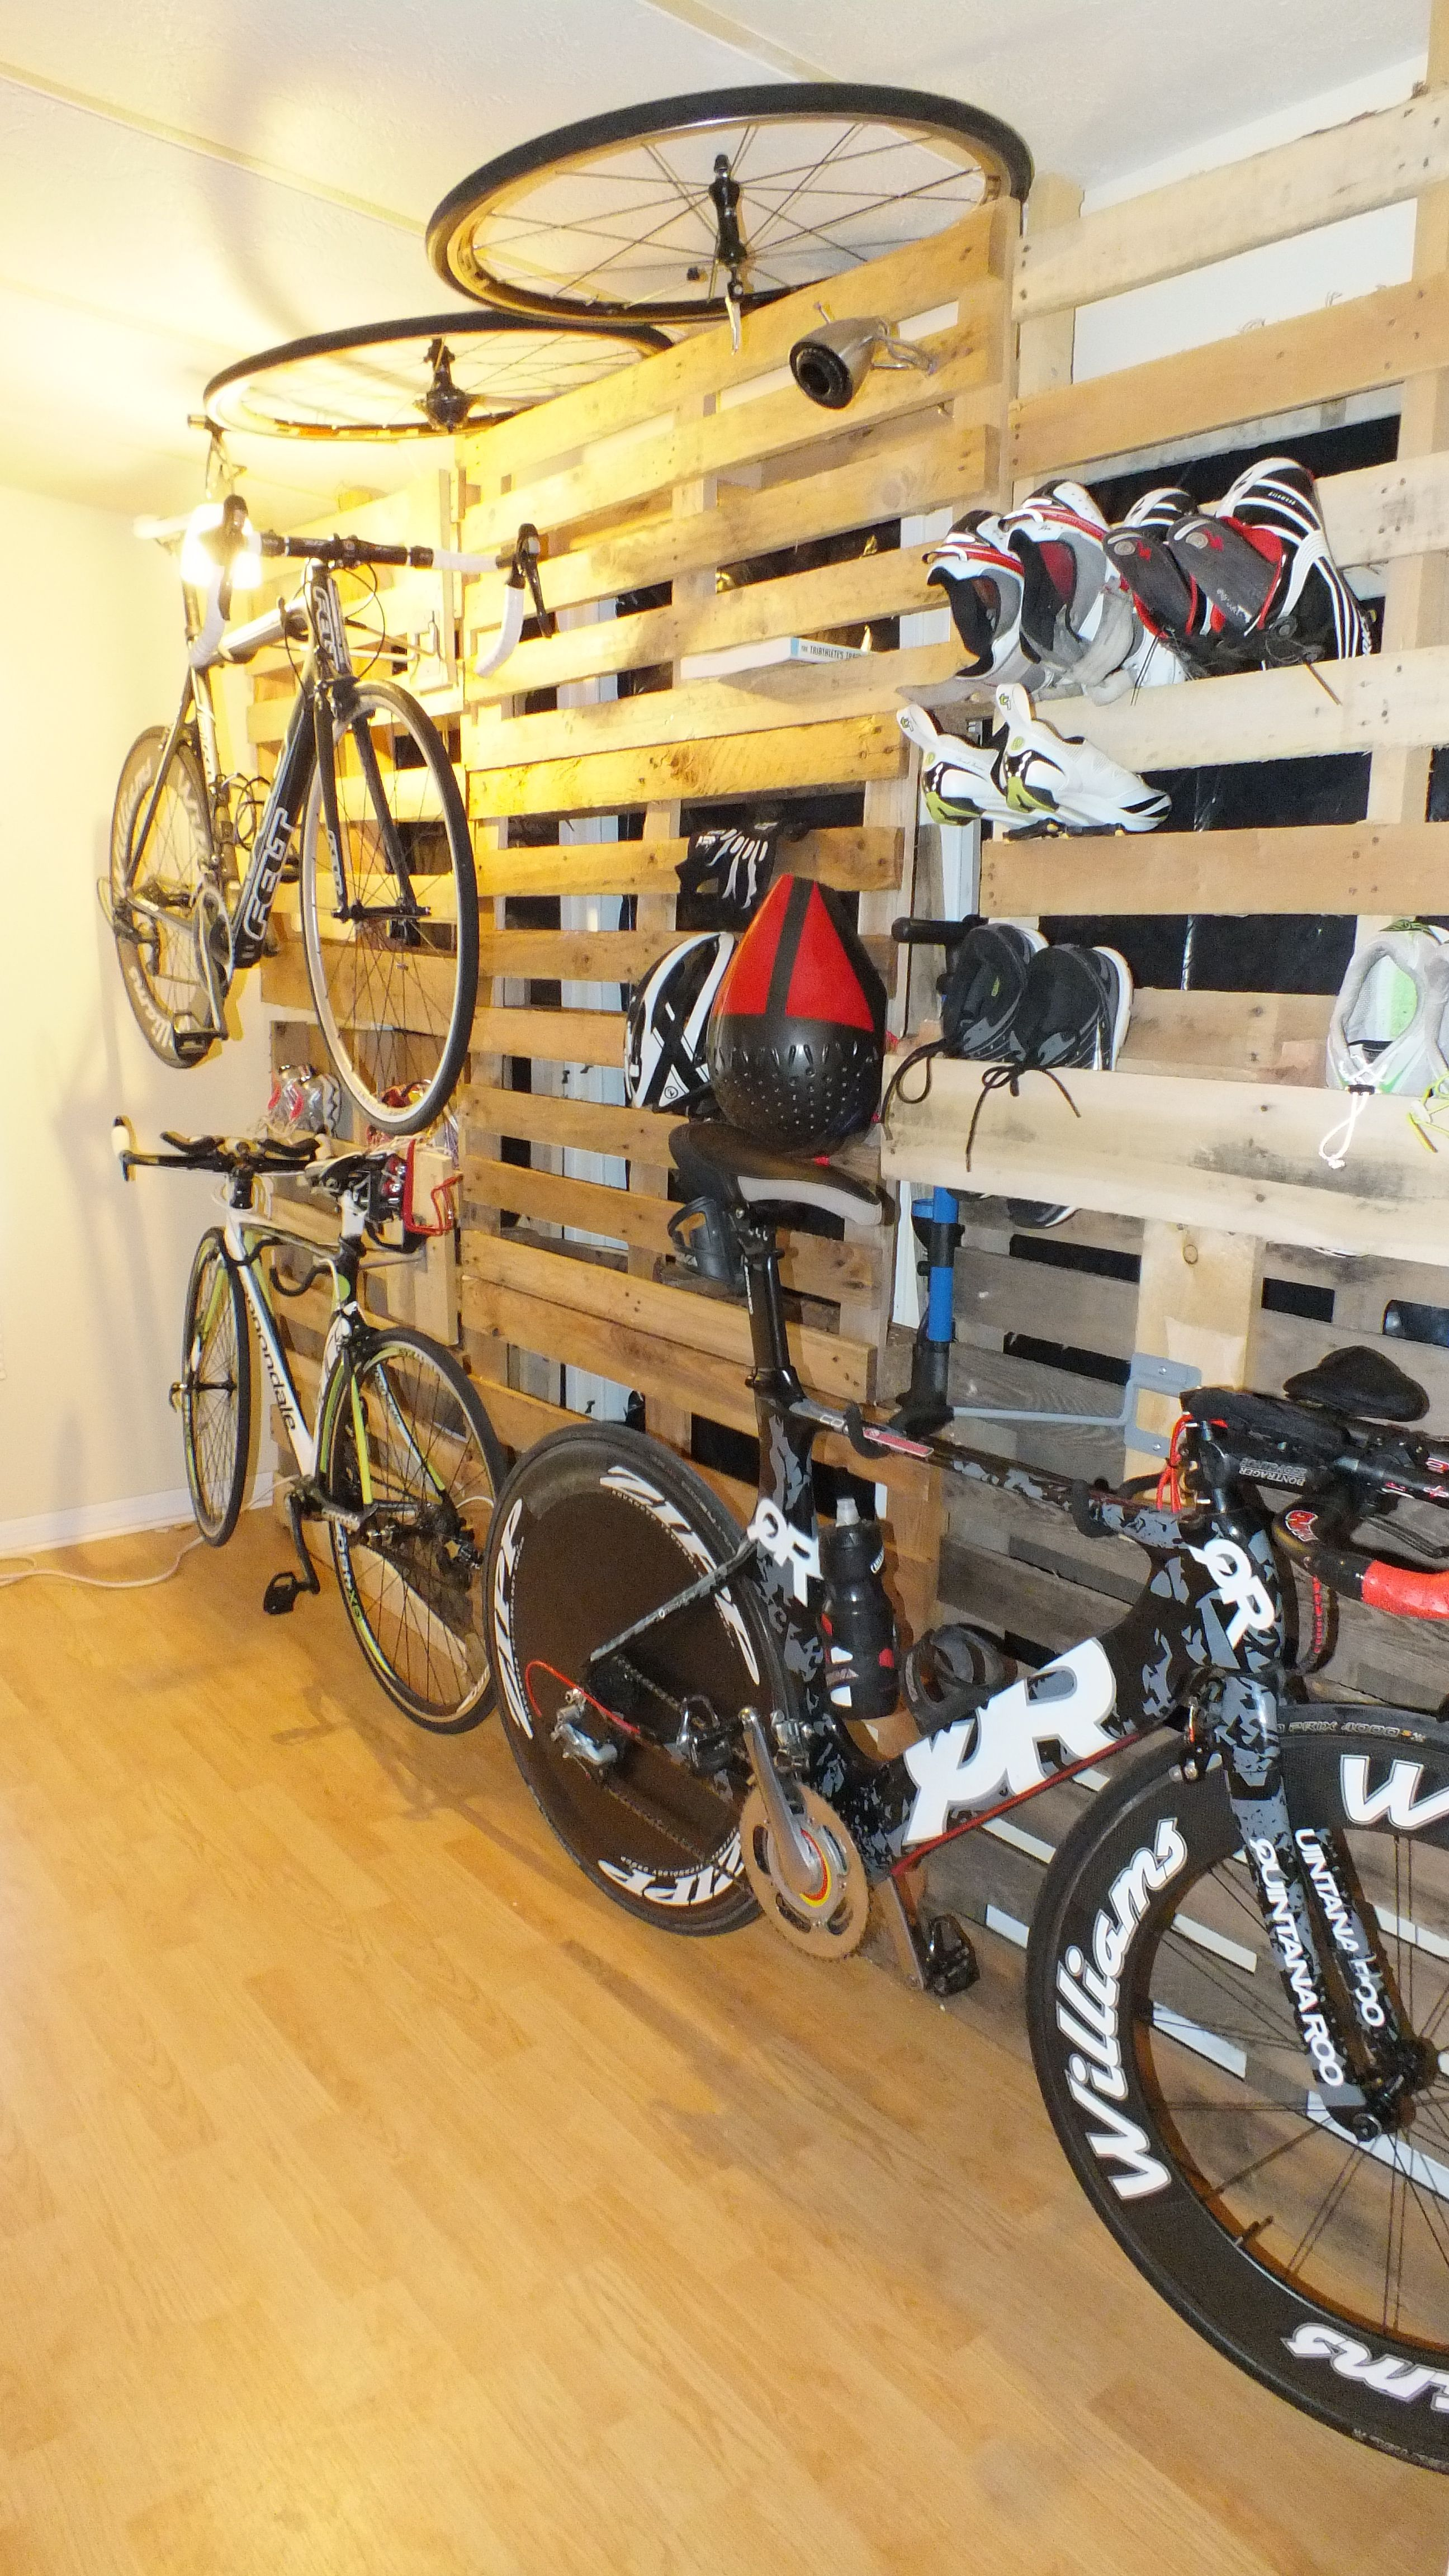 Fahrrad Garage Aufhängen Some Ideas For Your Training Gear Warehouse Or Quotpain Cave